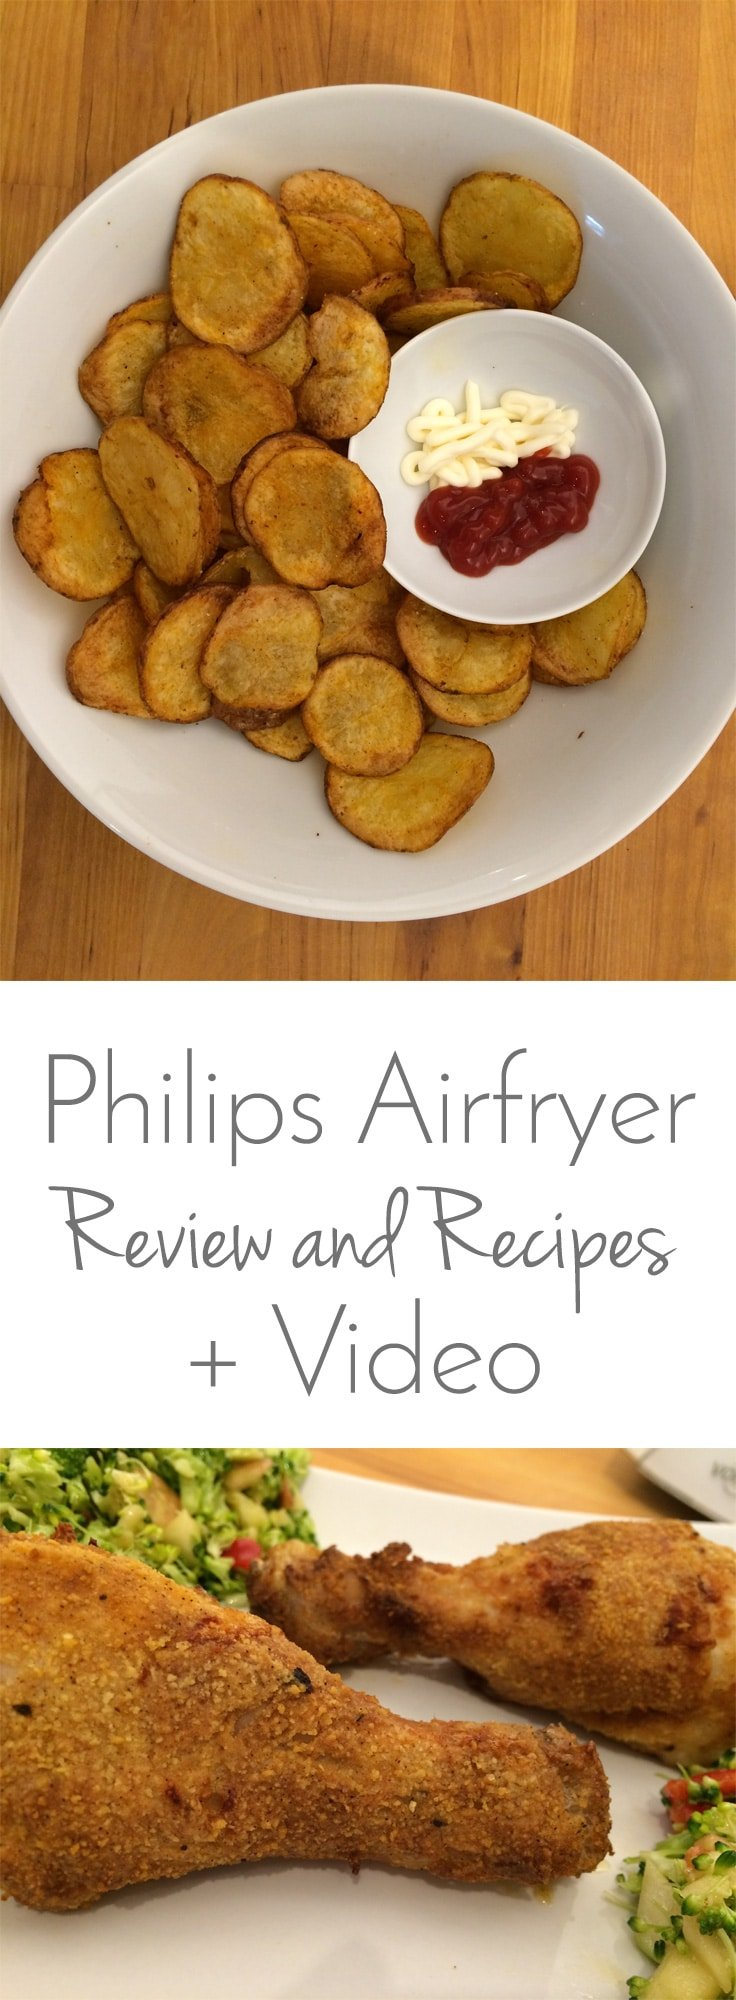 Philips Airfryer - Tasty Recipes and a YouTube Review